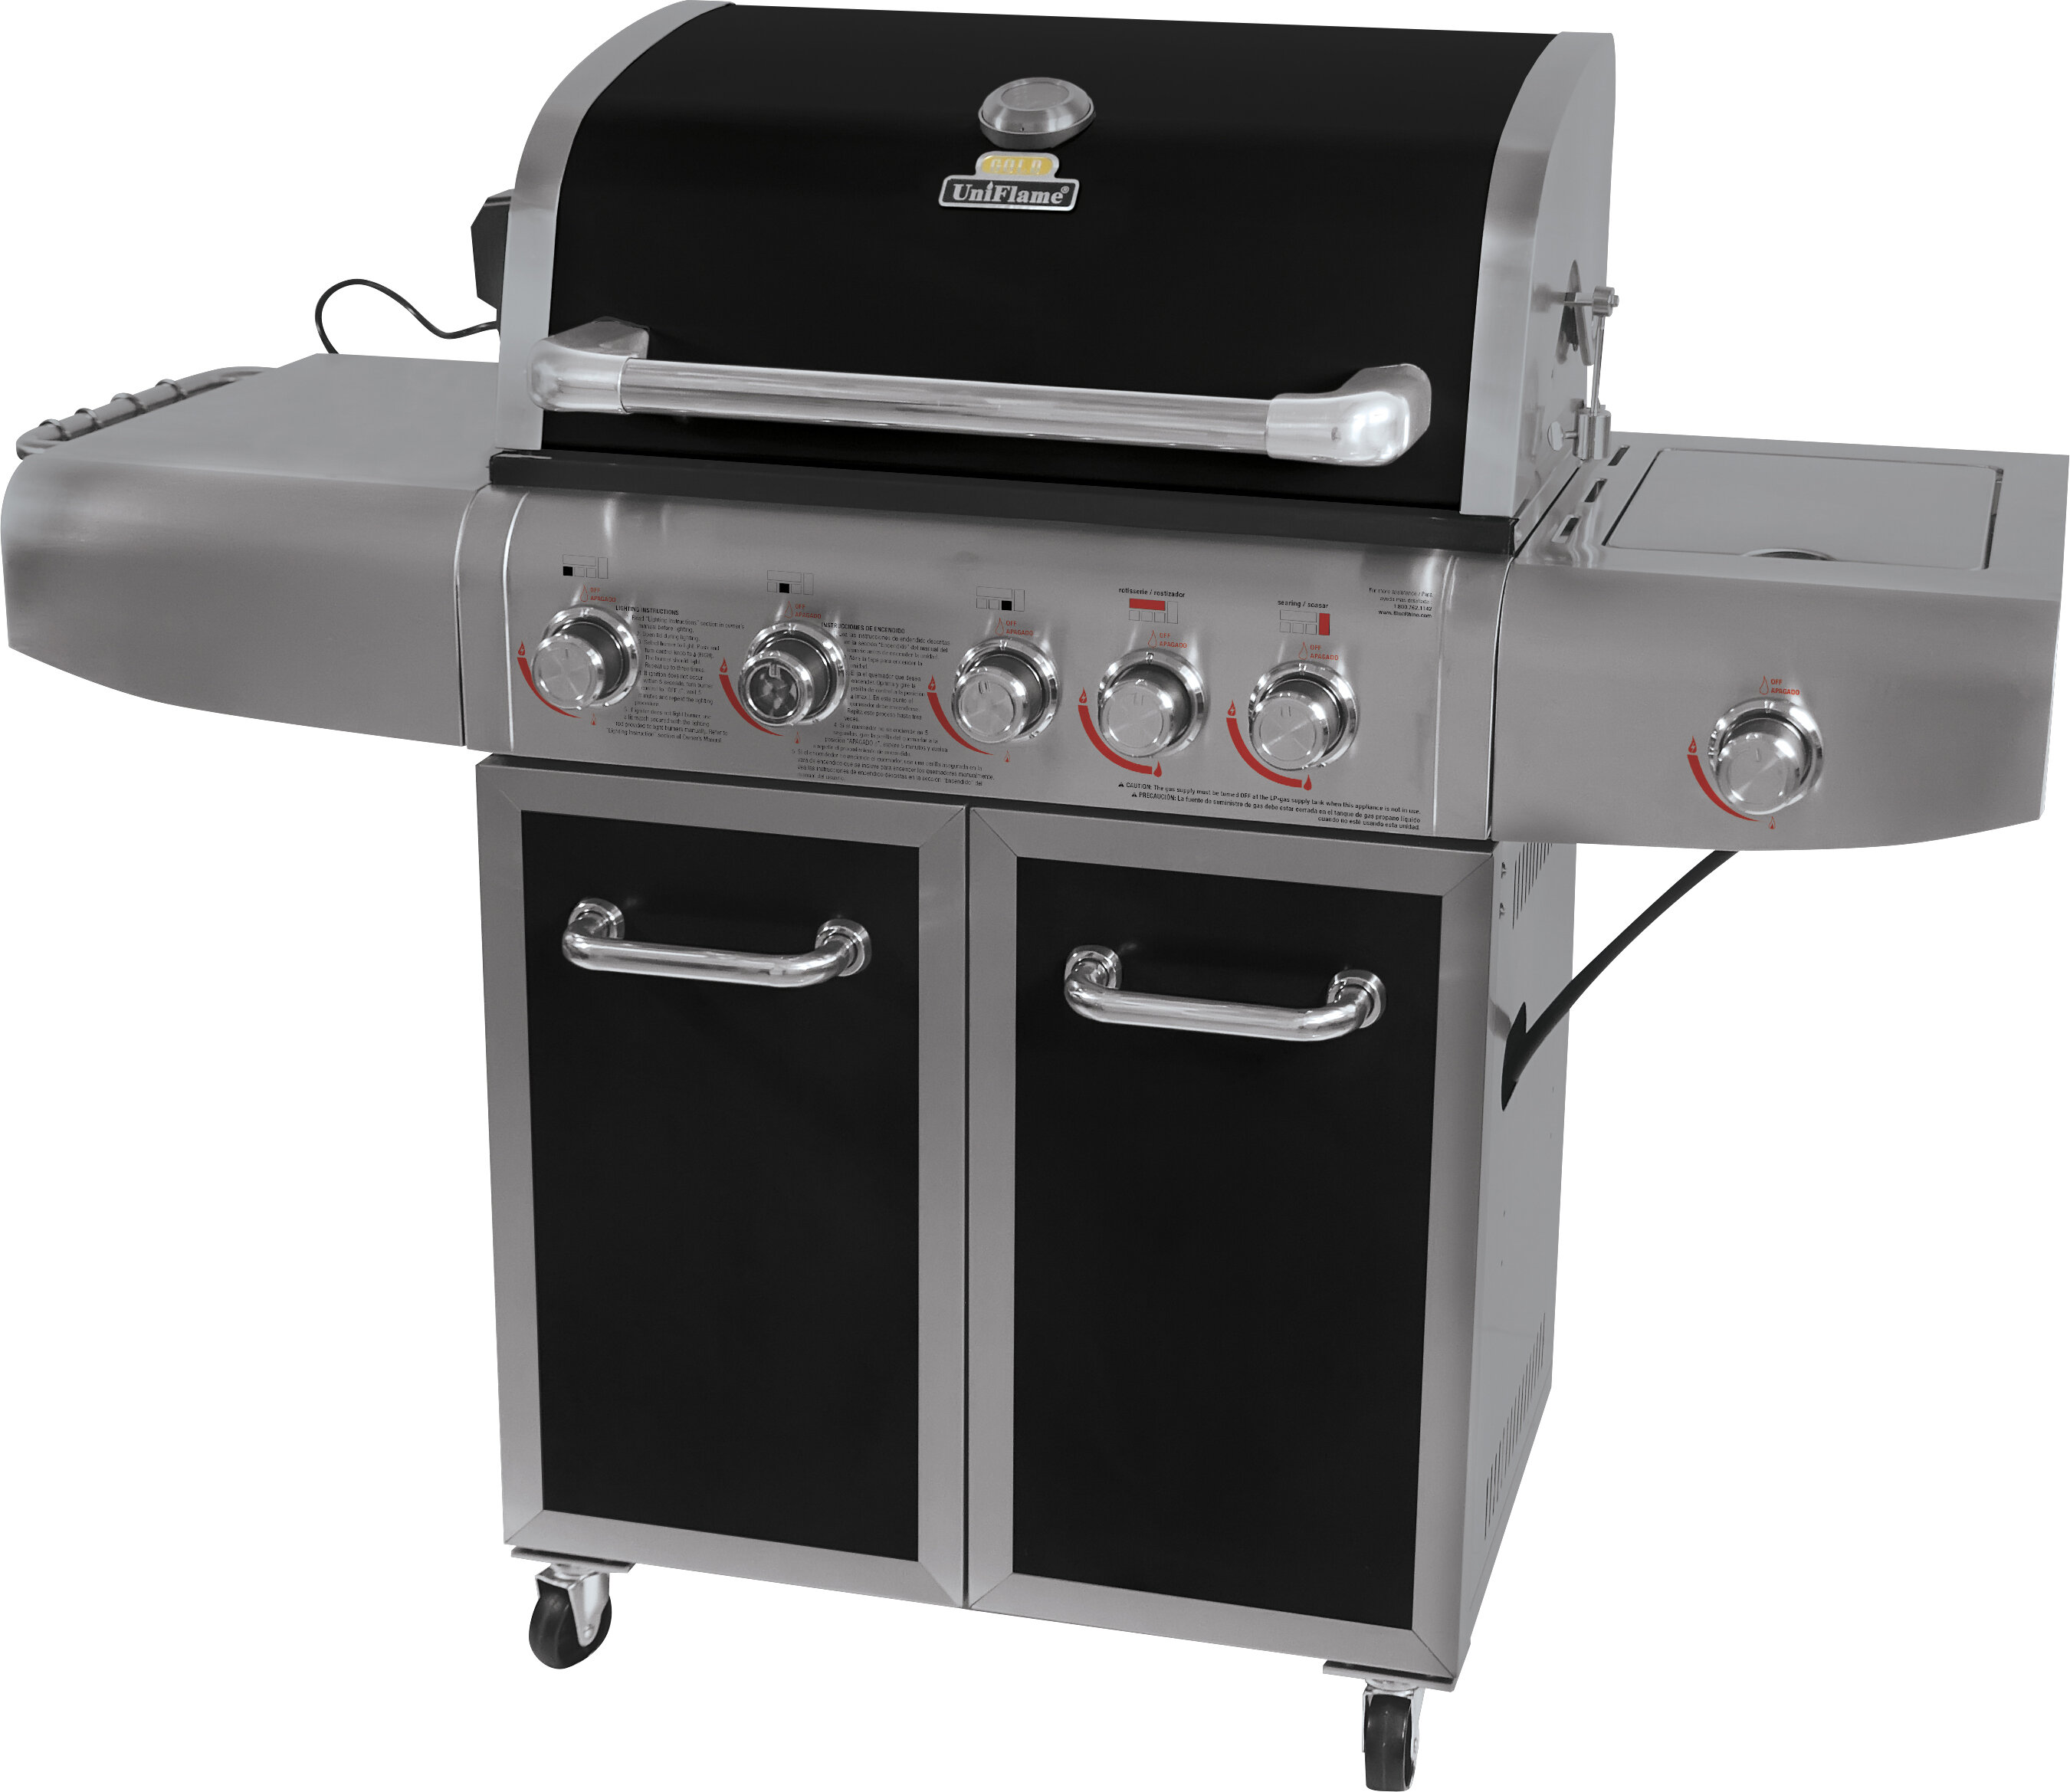 Grill Cabinet: Uniflame Barbecue 6-Burner Propane Gas Grill With Cabinet